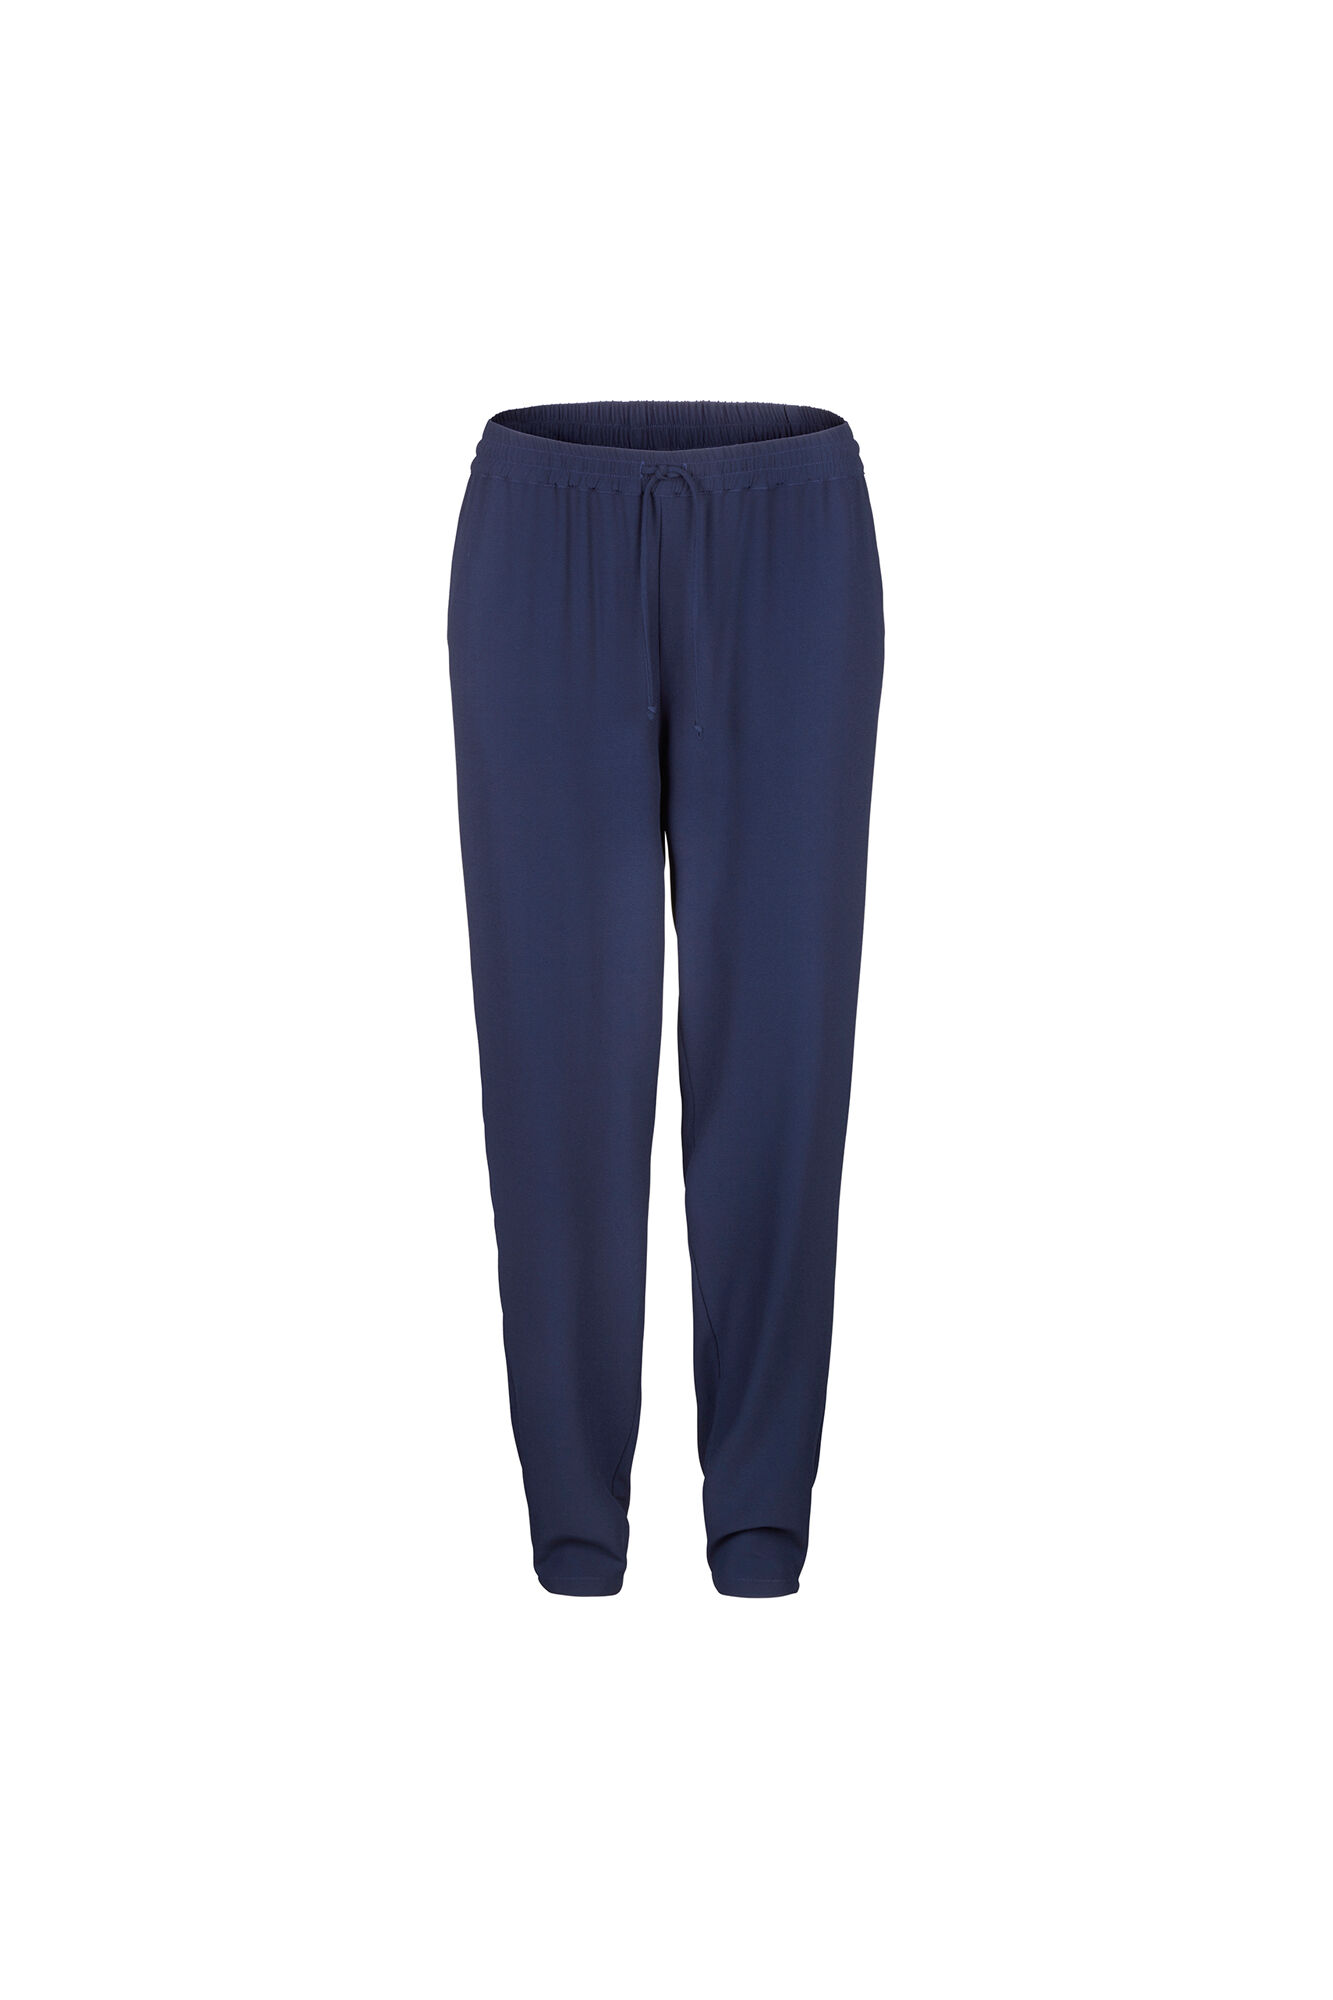 ENMIAMI PANTS 6095, NEW NAVY